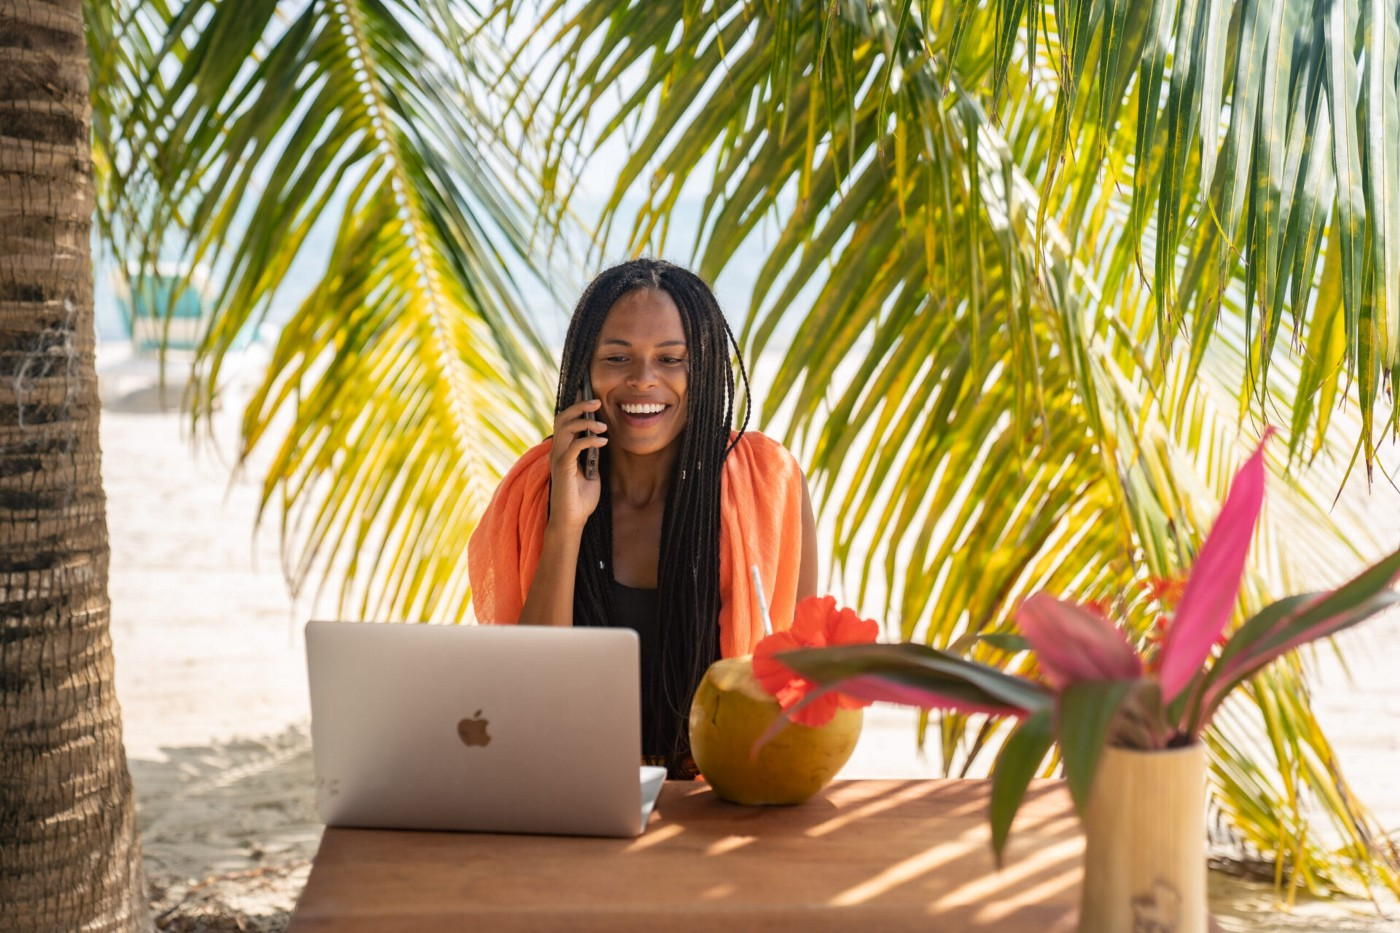 How This Digital Nomad Community in Southern Belize Became The First in the Caribbean